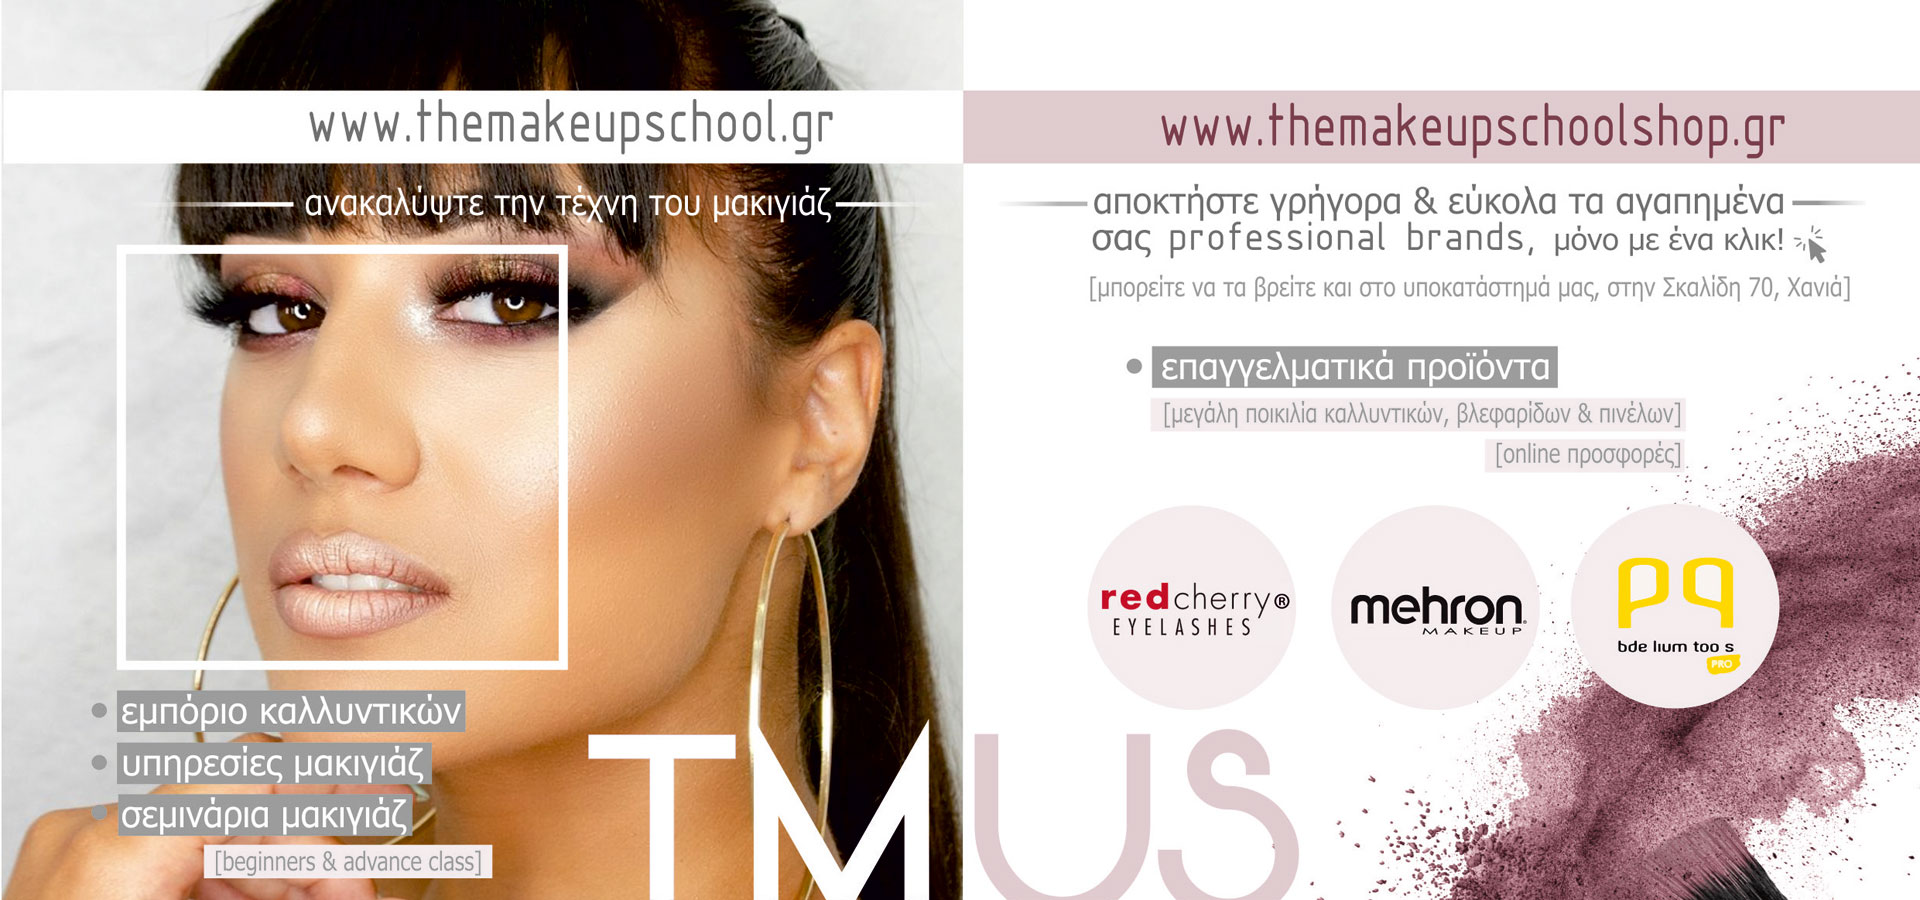 themakeupschool.gr